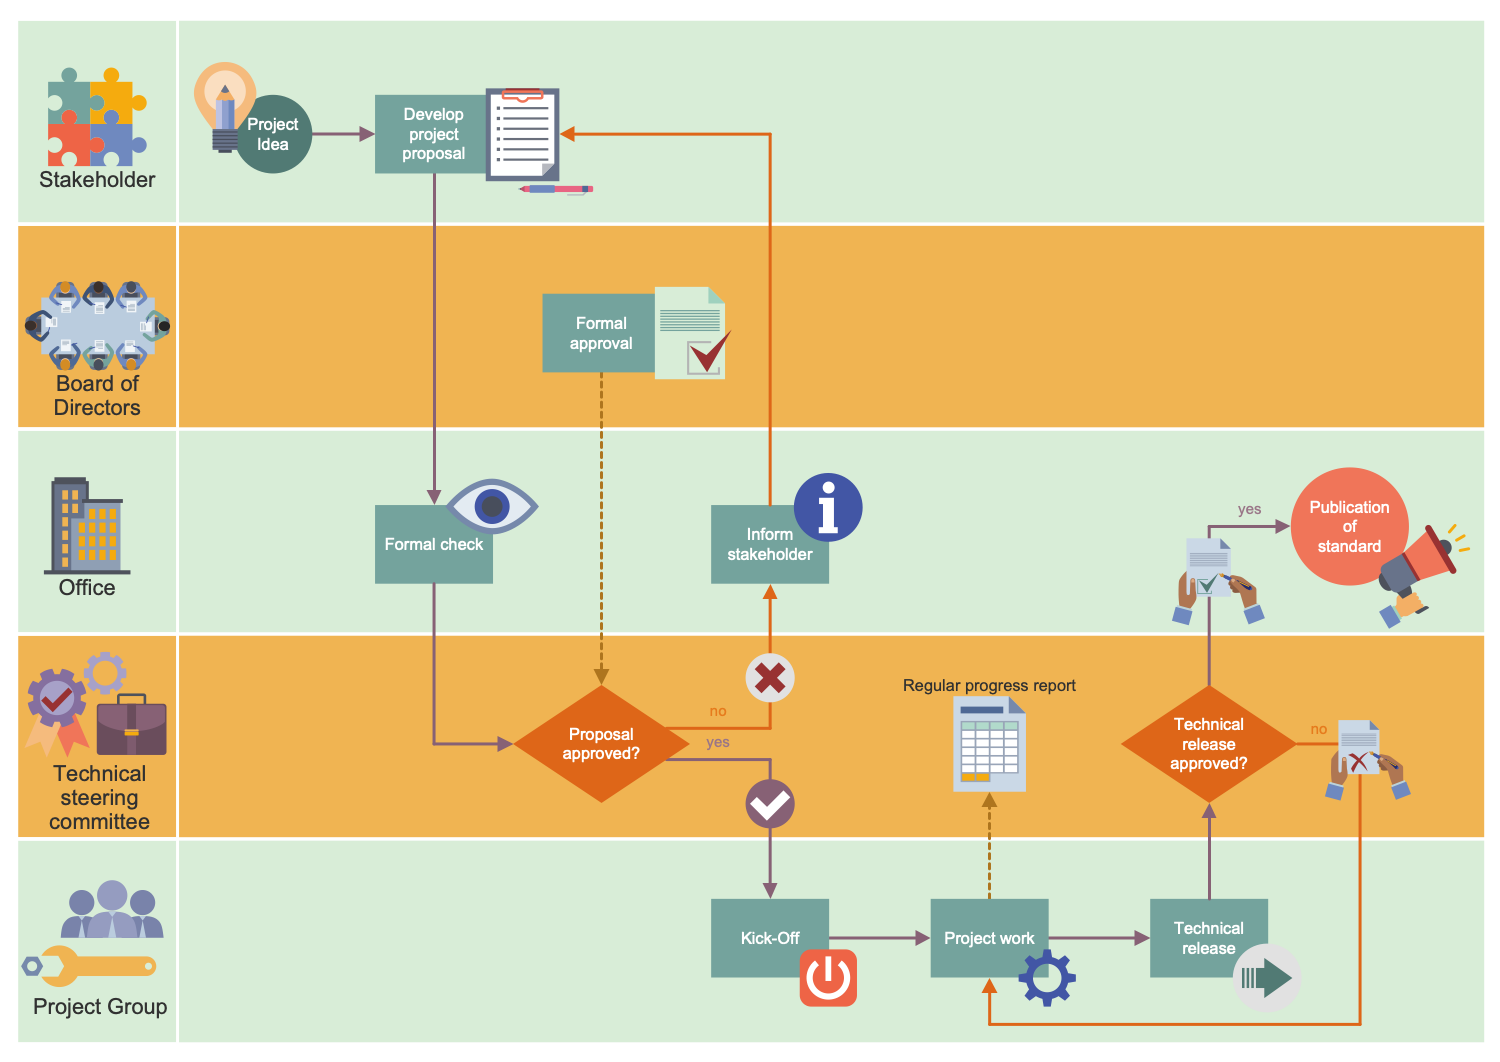 Business Process Workflow Diagram - Life Cycle of an ASAM Standard